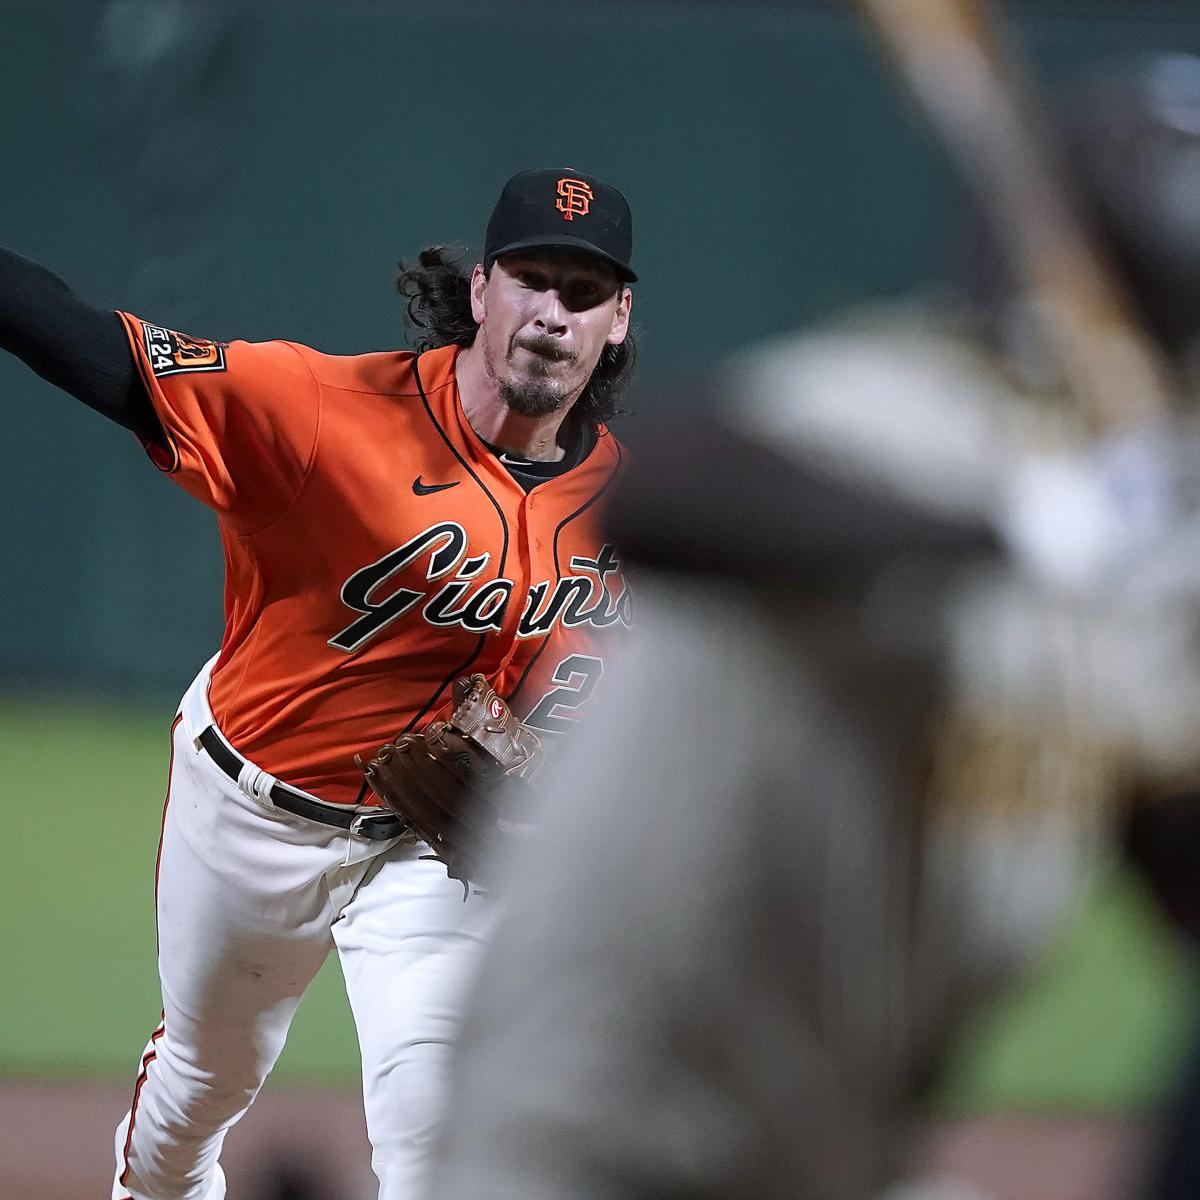 Jeff Samardzija Designated for Assignment by Giants, Placed on Release Waivers